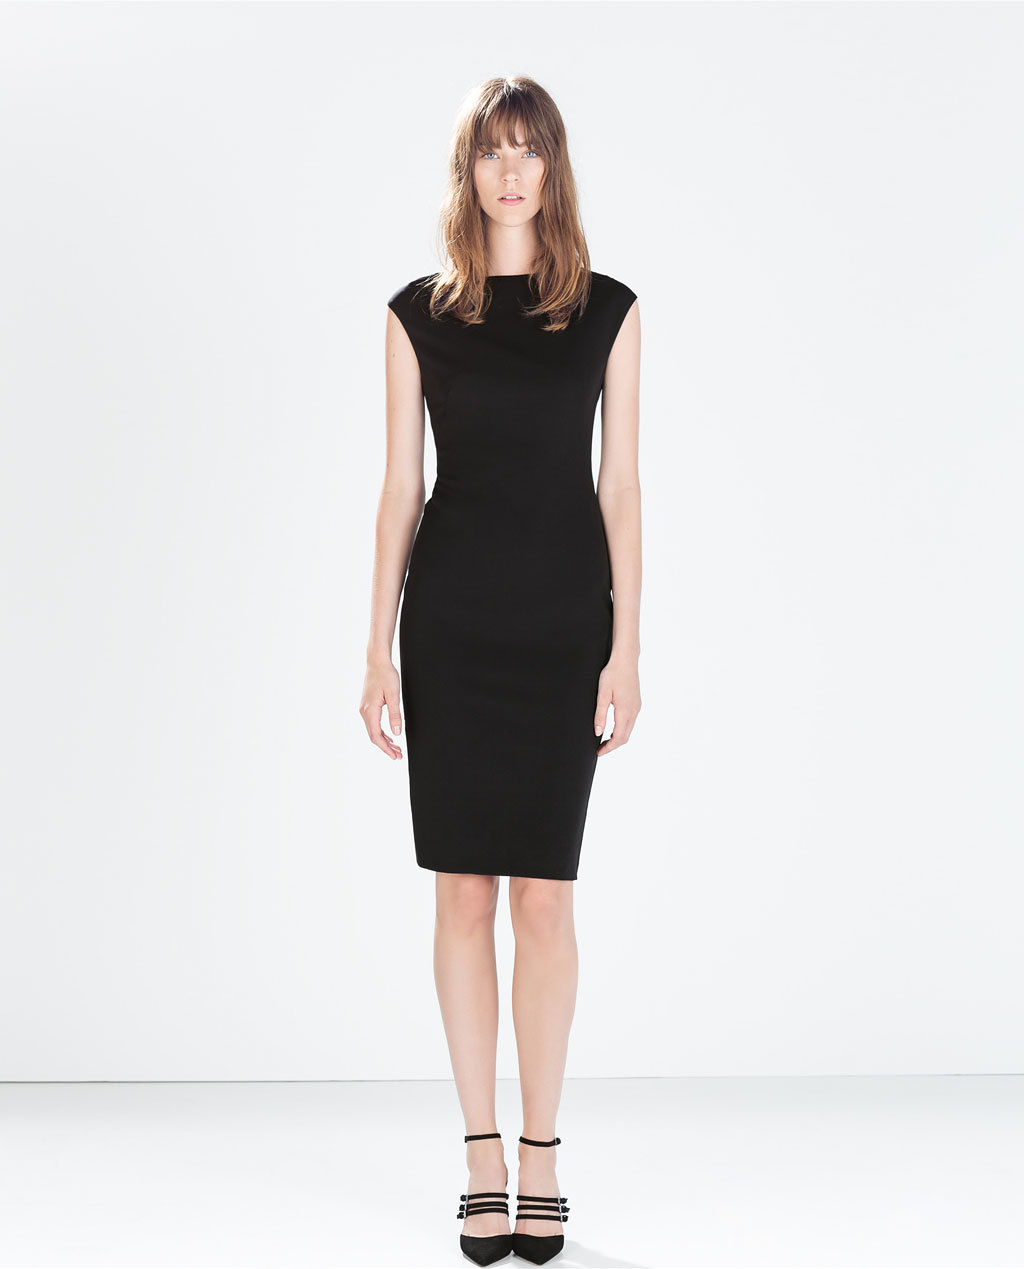 Tube Dress With Pleats At Neckline - style: shift; neckline: slash/boat neckline; sleeve style: capped; pattern: plain; predominant colour: black; occasions: evening, occasion, creative work; length: just above the knee; fit: body skimming; fibres: polyester/polyamide - stretch; sleeve length: sleeveless; texture group: jersey - clingy; pattern type: fabric; season: a/w 2014